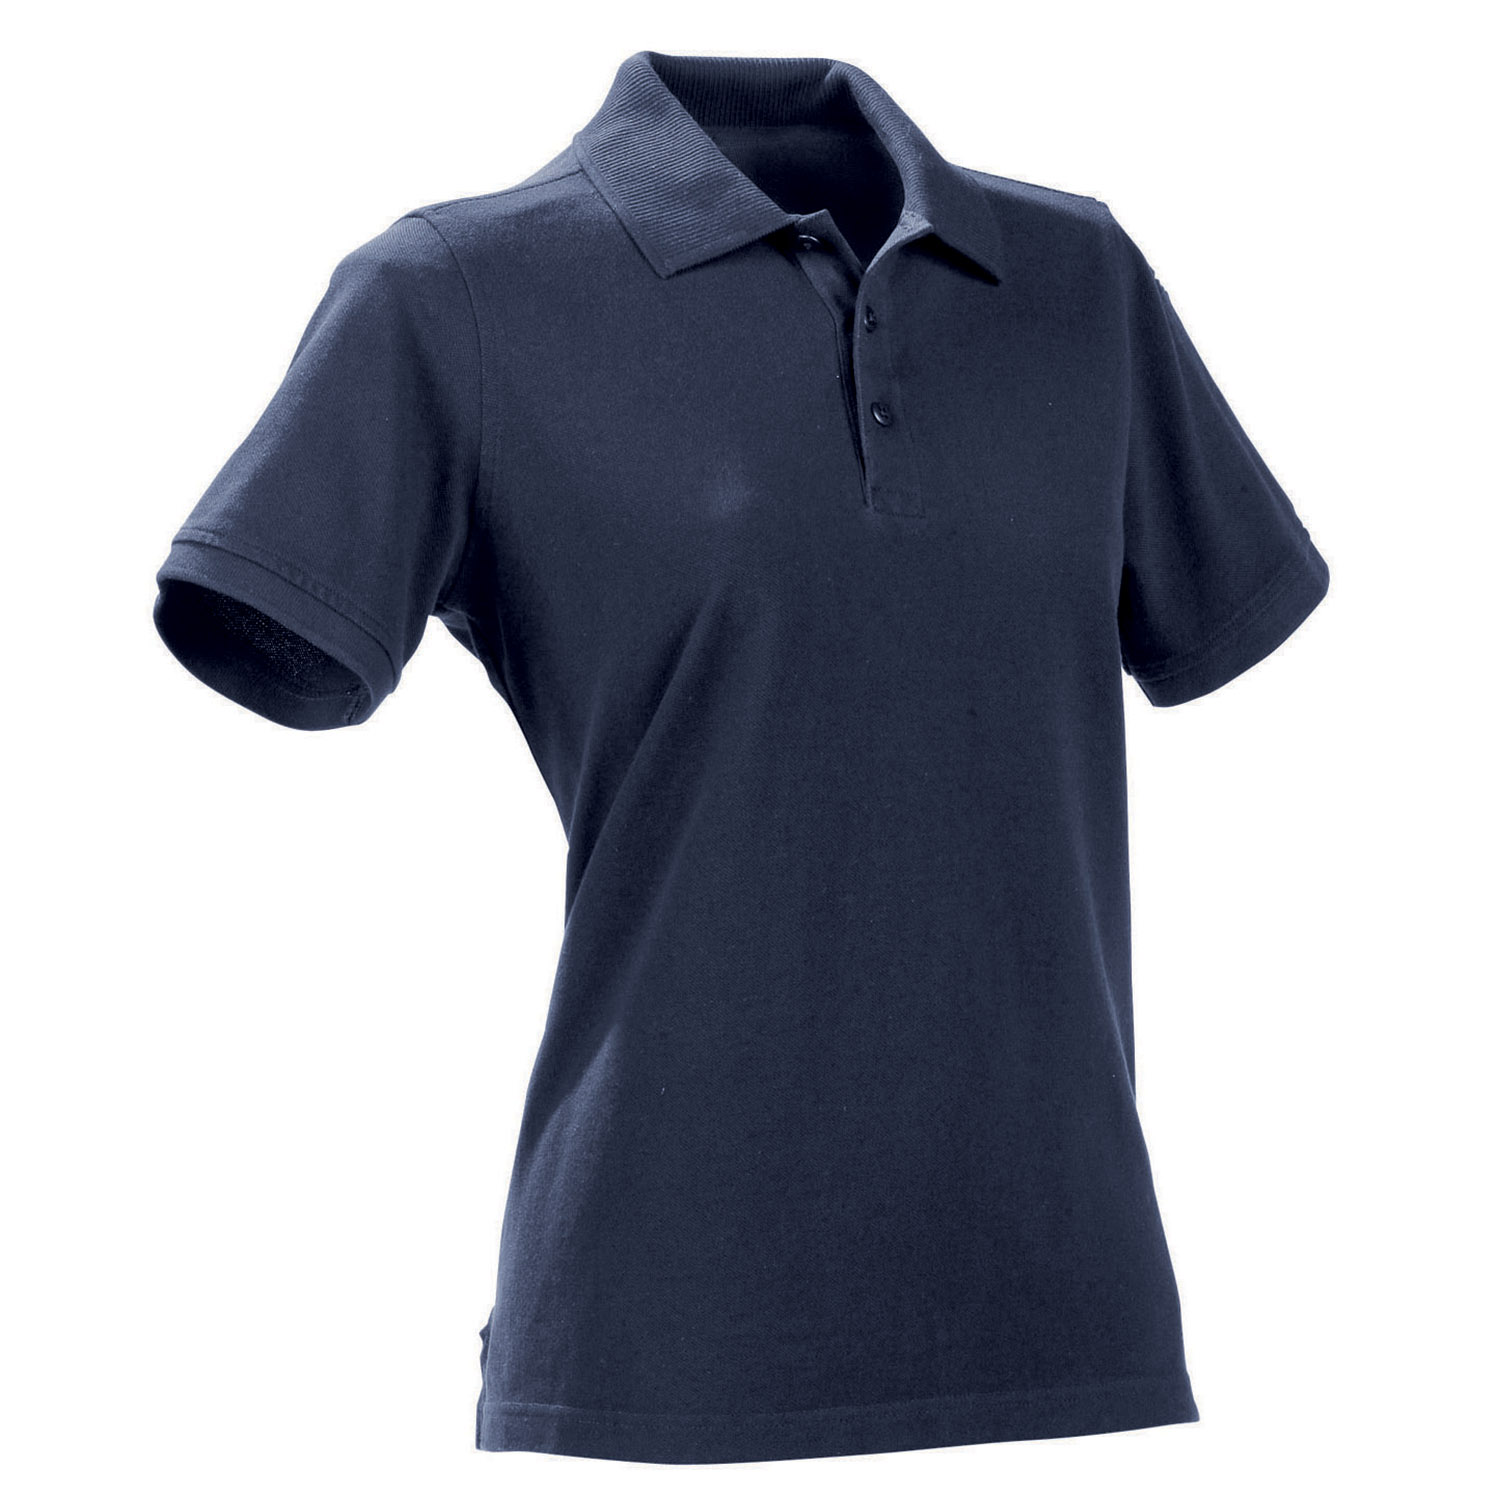 5.11 Tactical Utility Womens Short Sleeve Polo